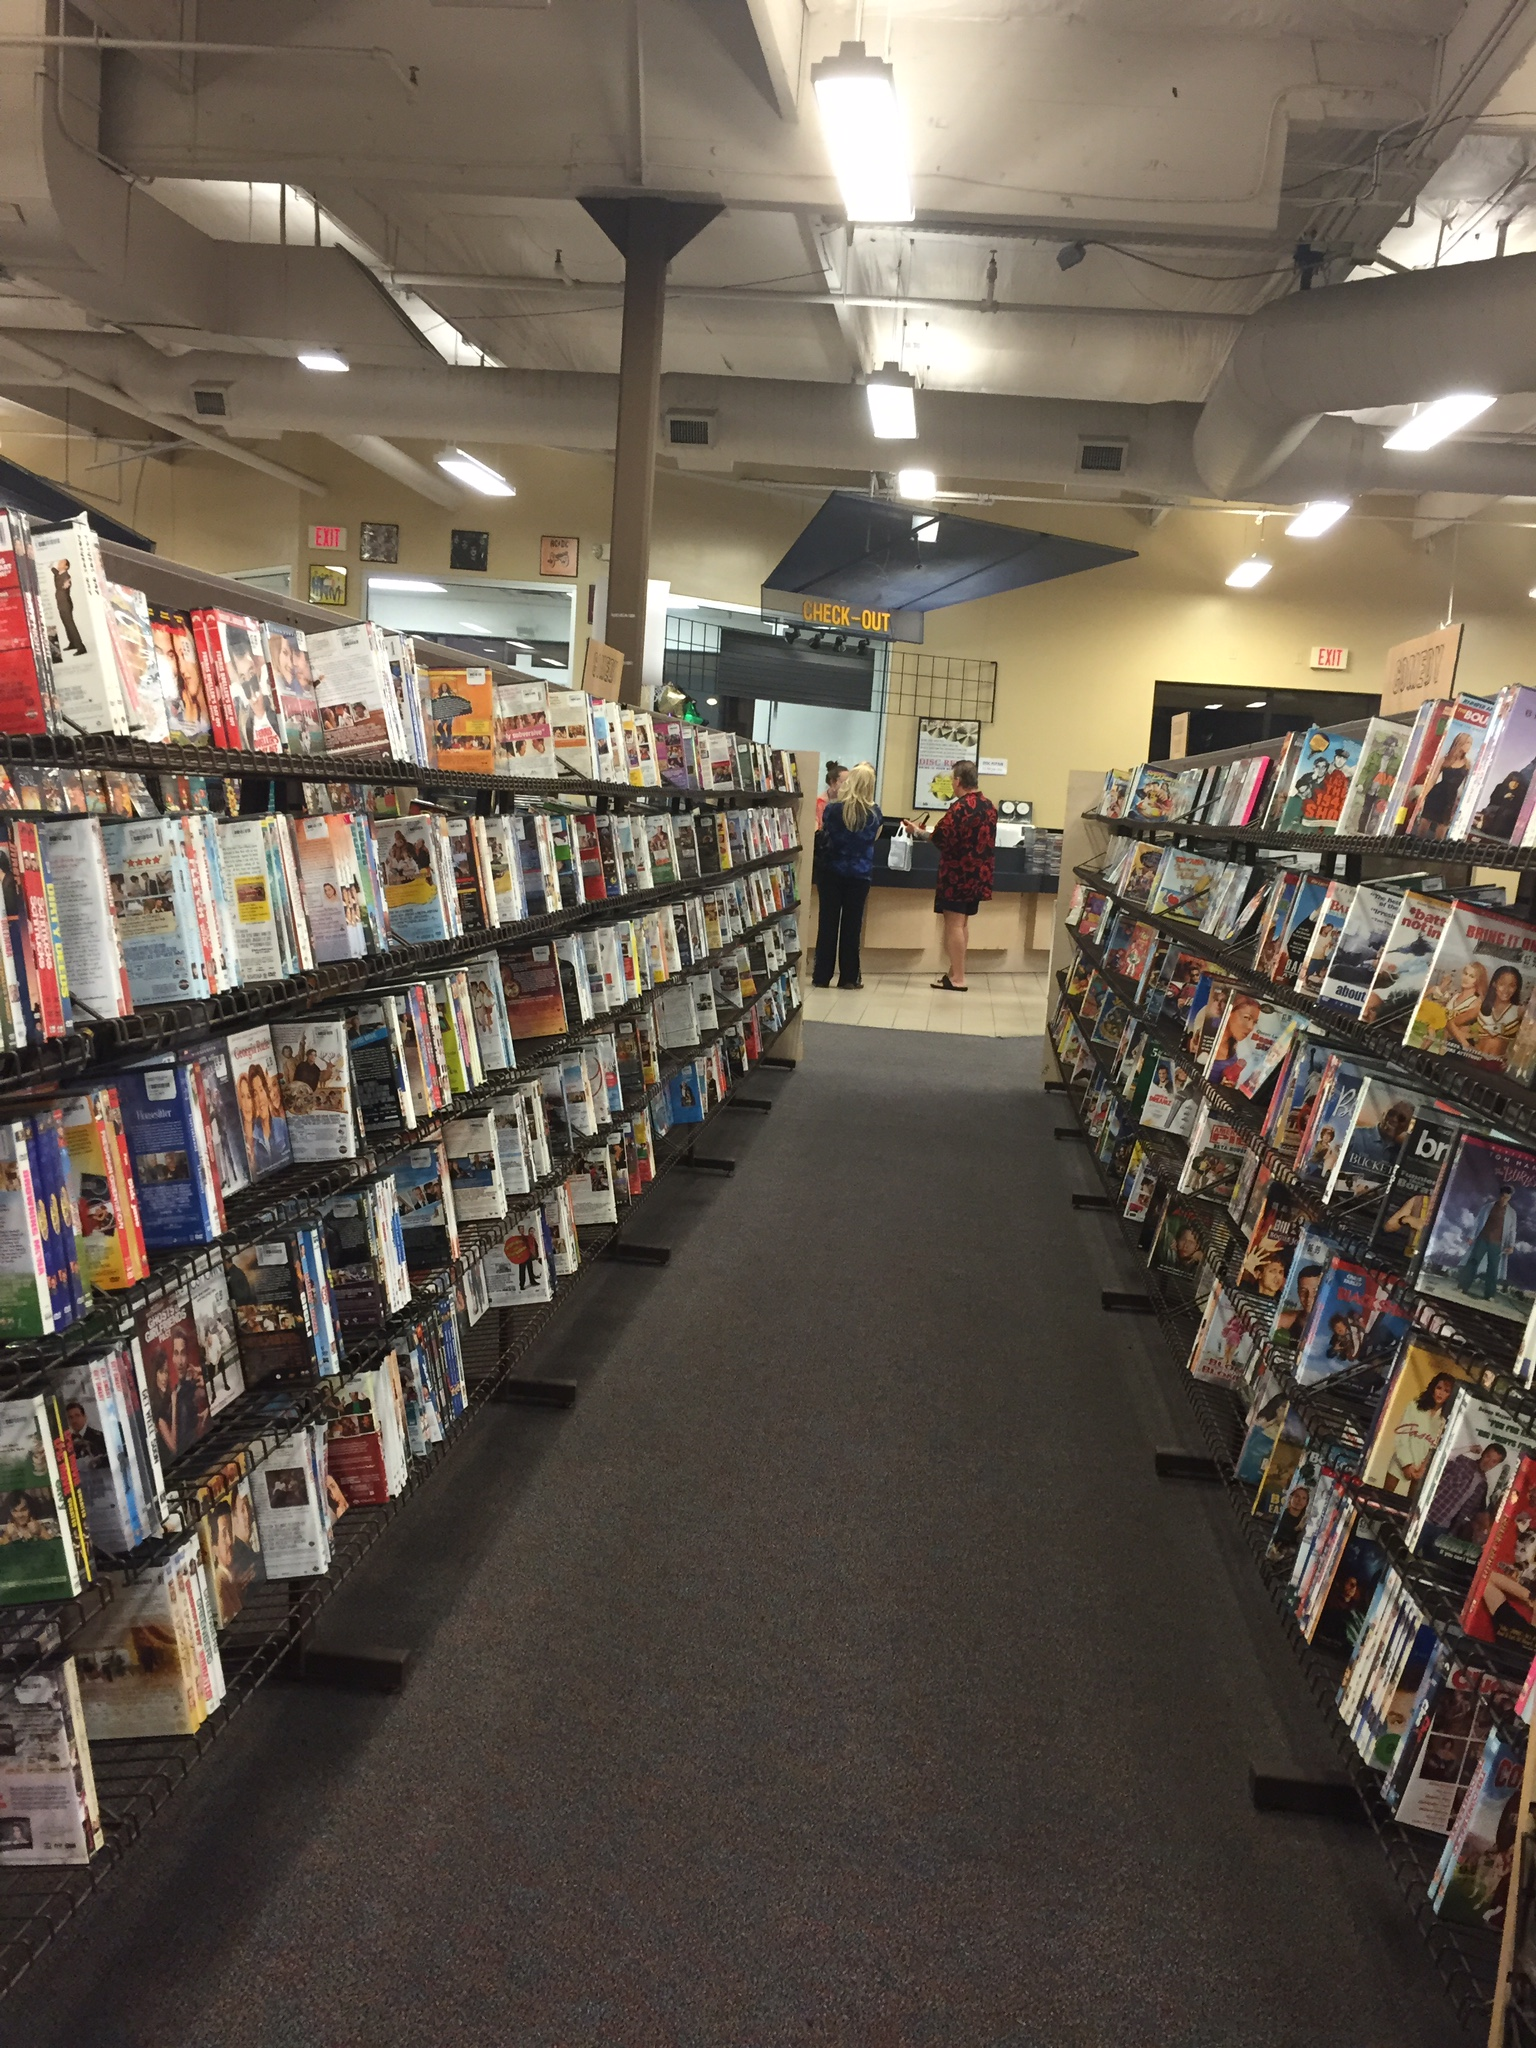 All the movies you want, we have them